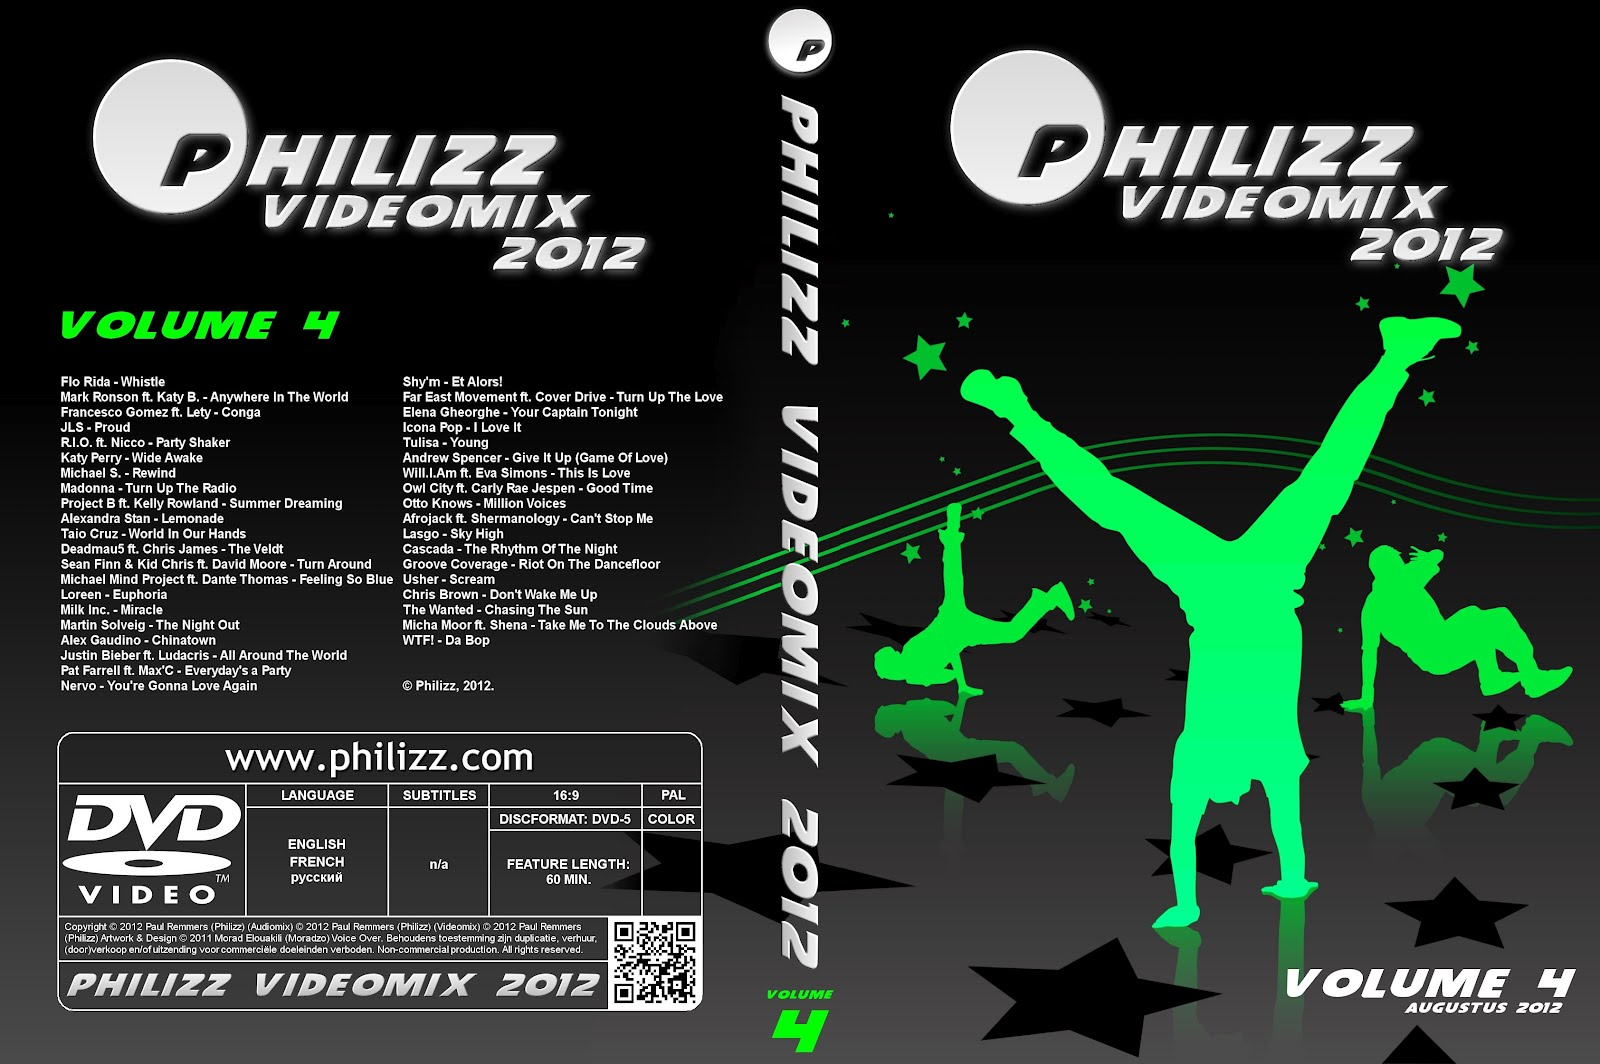 Philizz Videomix 2012 - Volume 4